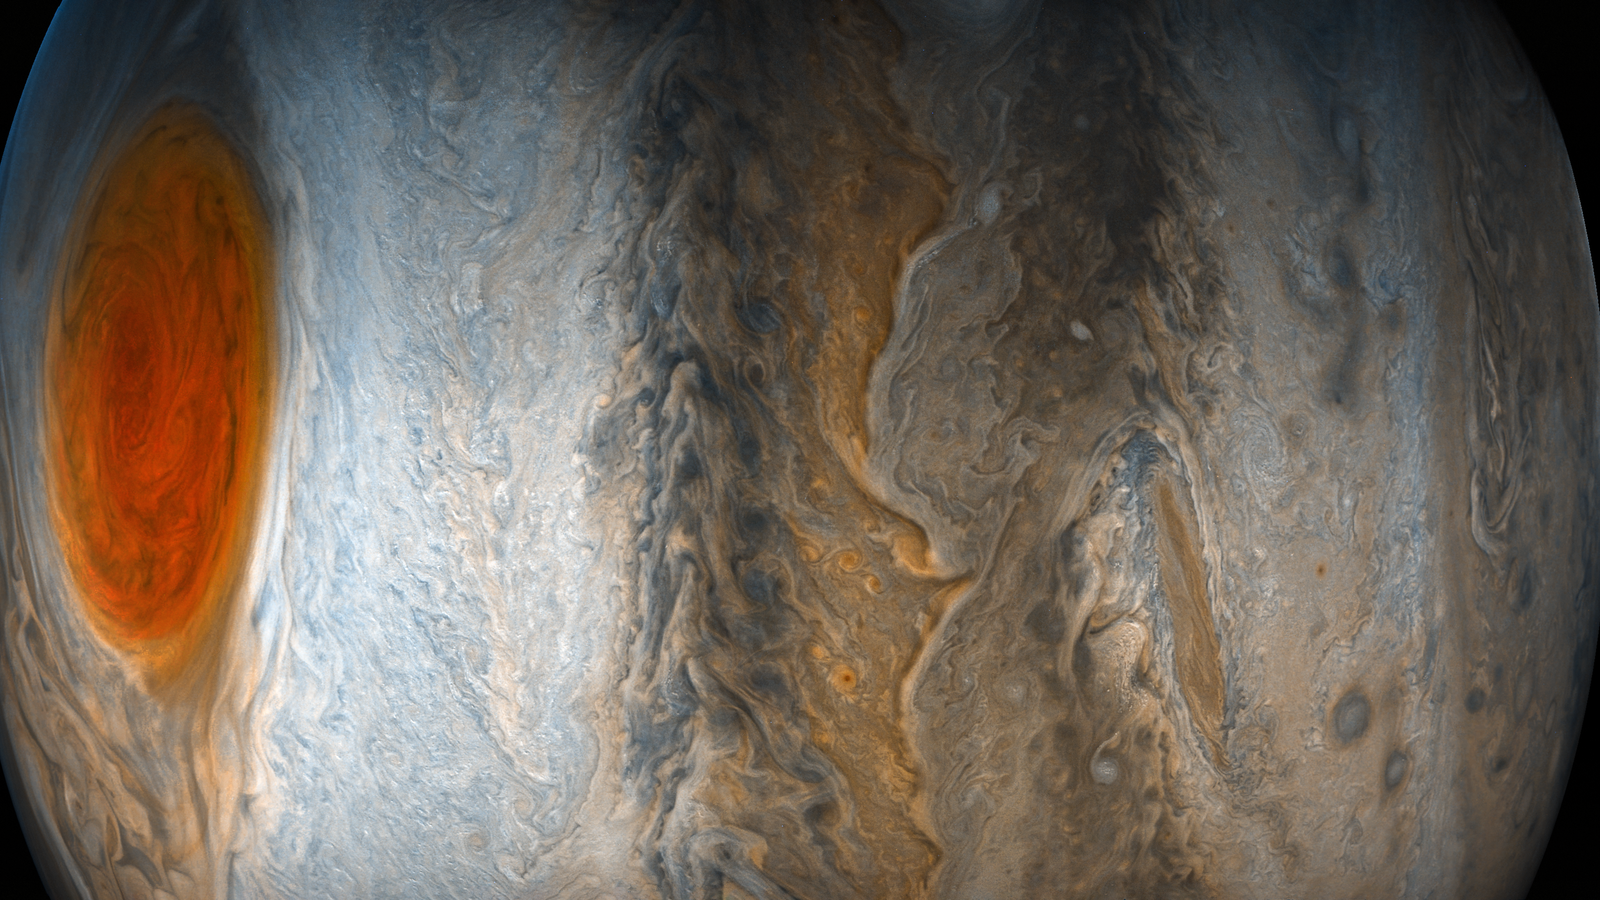 New Image of Jupiter Is So Beautiful It's Making Us Angry